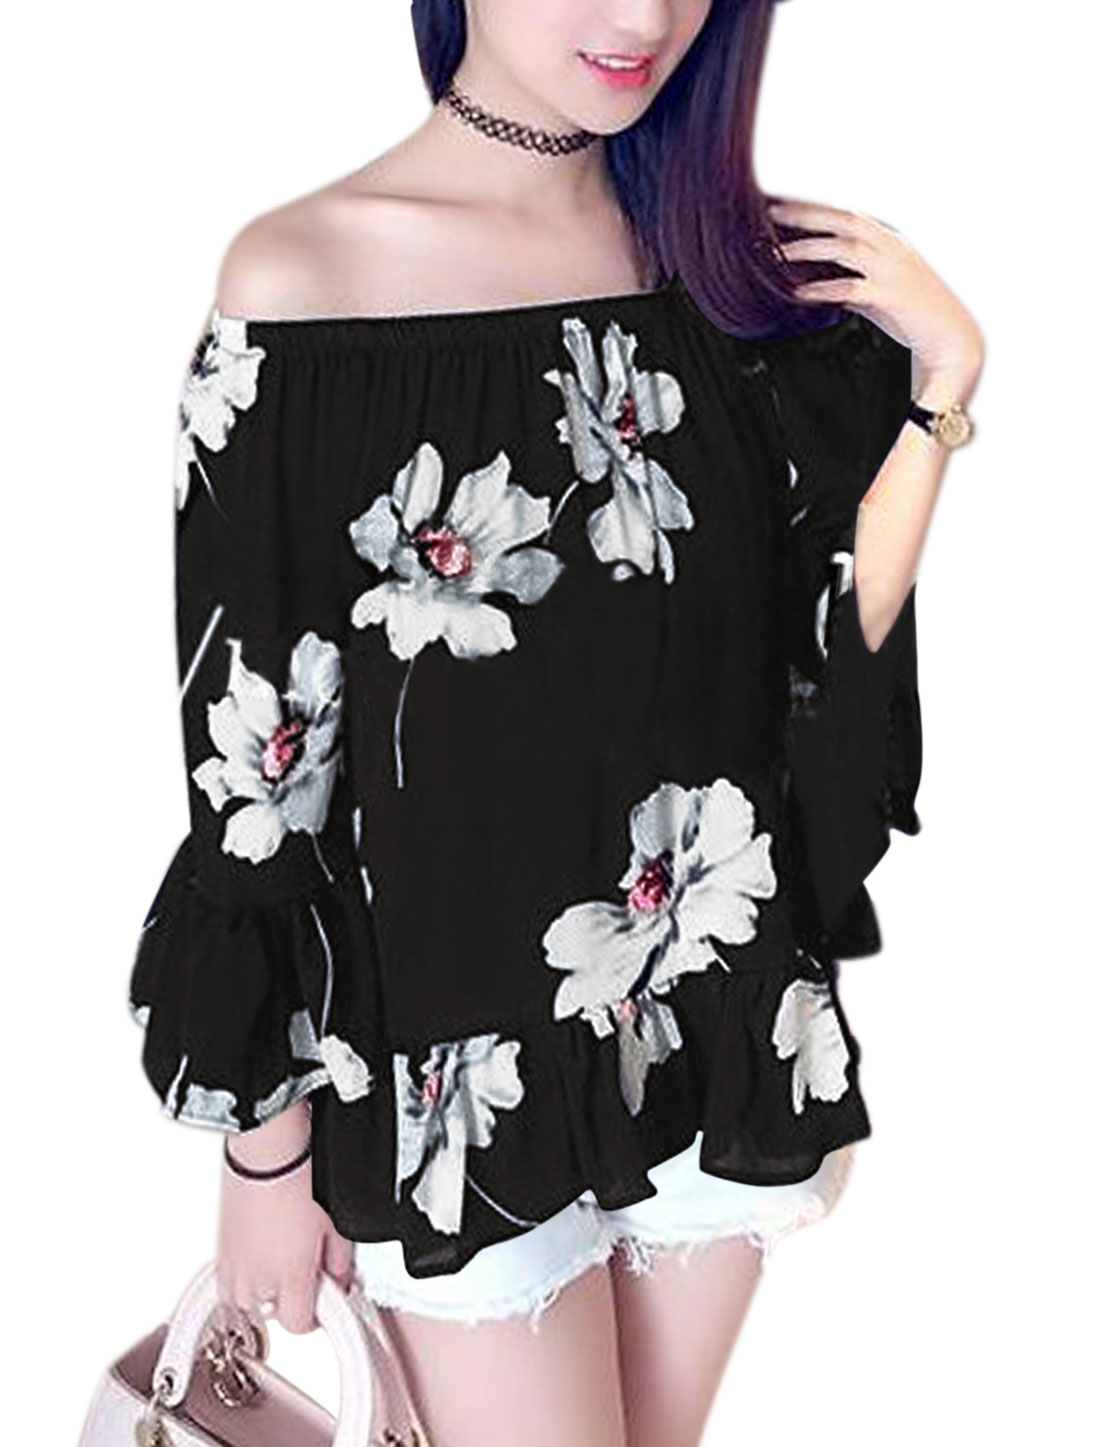 Woman Floral Prints Off-the-Shoulder 3/4 Sleeves Chiffon Top Black XS